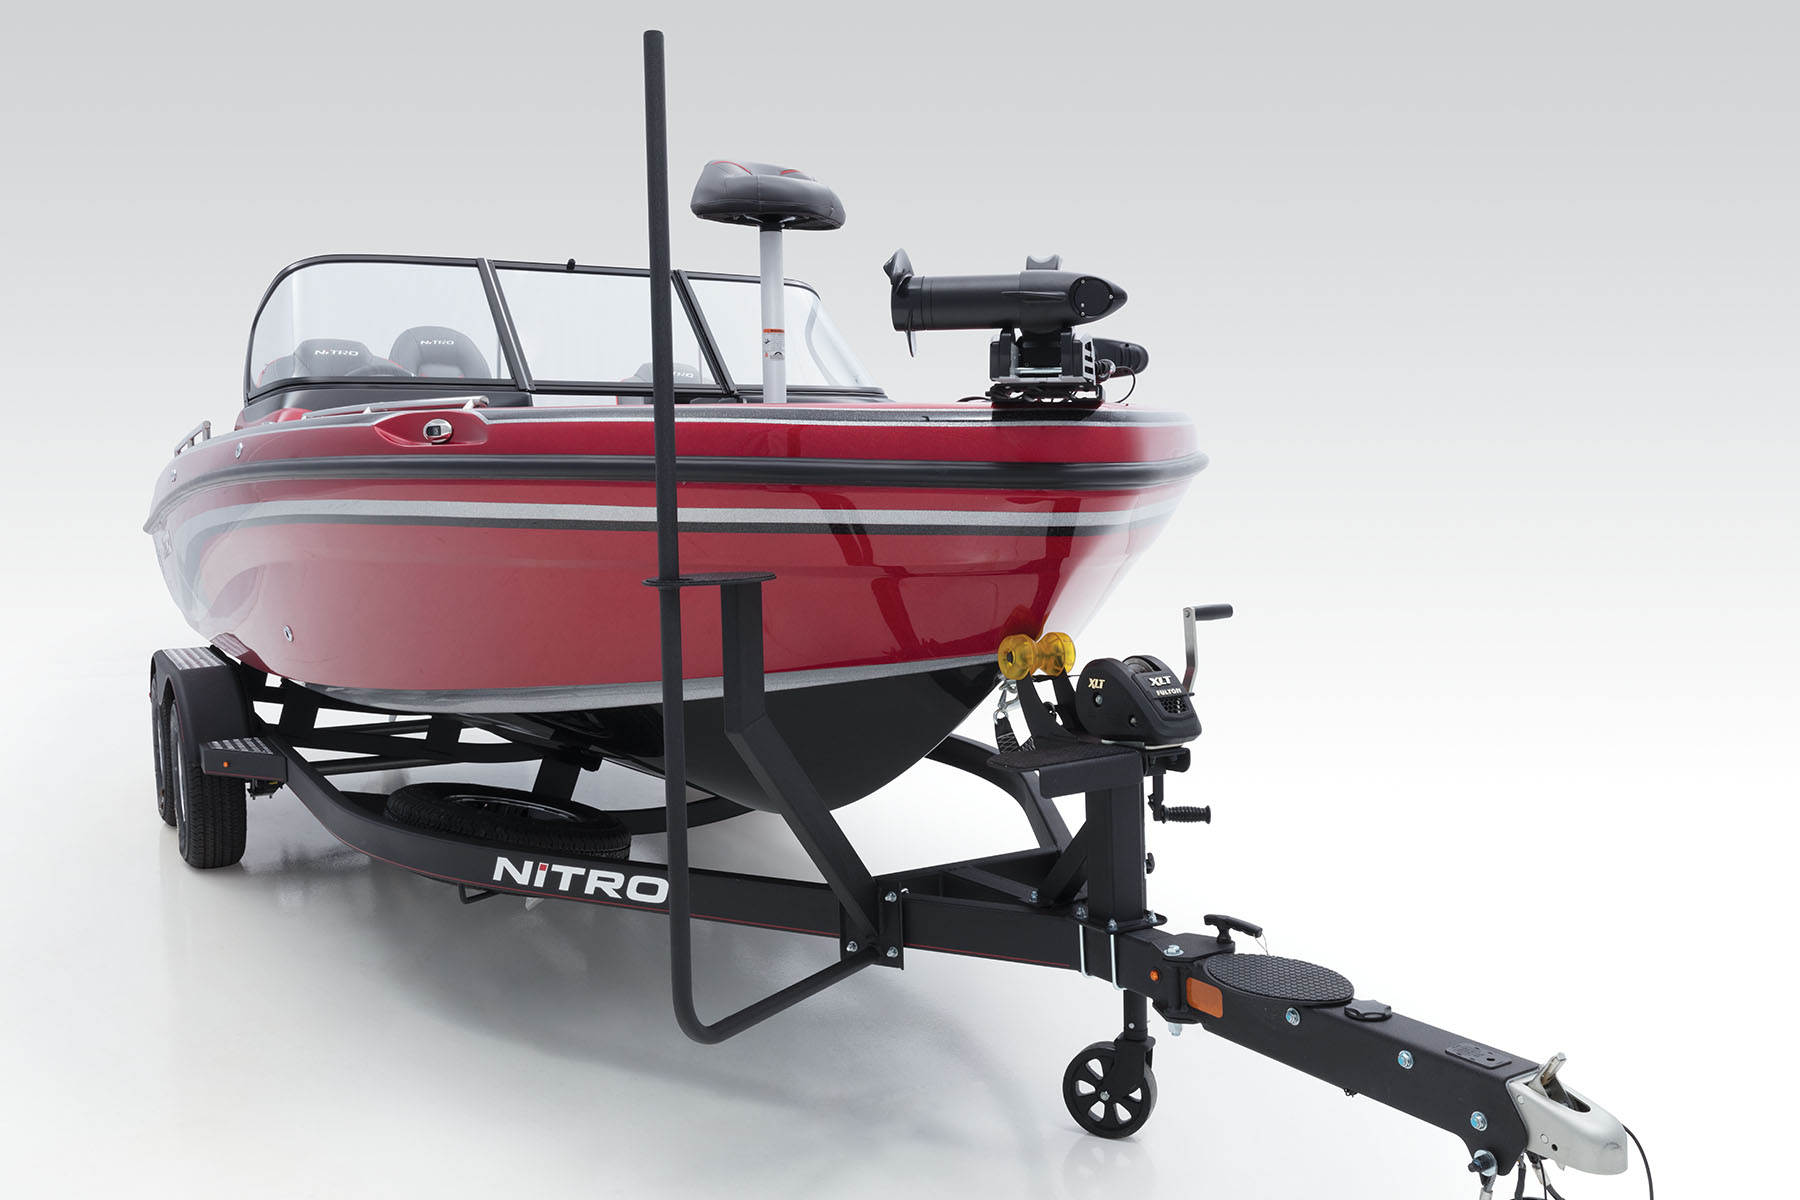 2018 Nitro Zv18 Boat Trailer 4 Pole Connector On Wiring New Integrated Boarding Step W Safety Handle For Easier Reboarding At Bow While Is